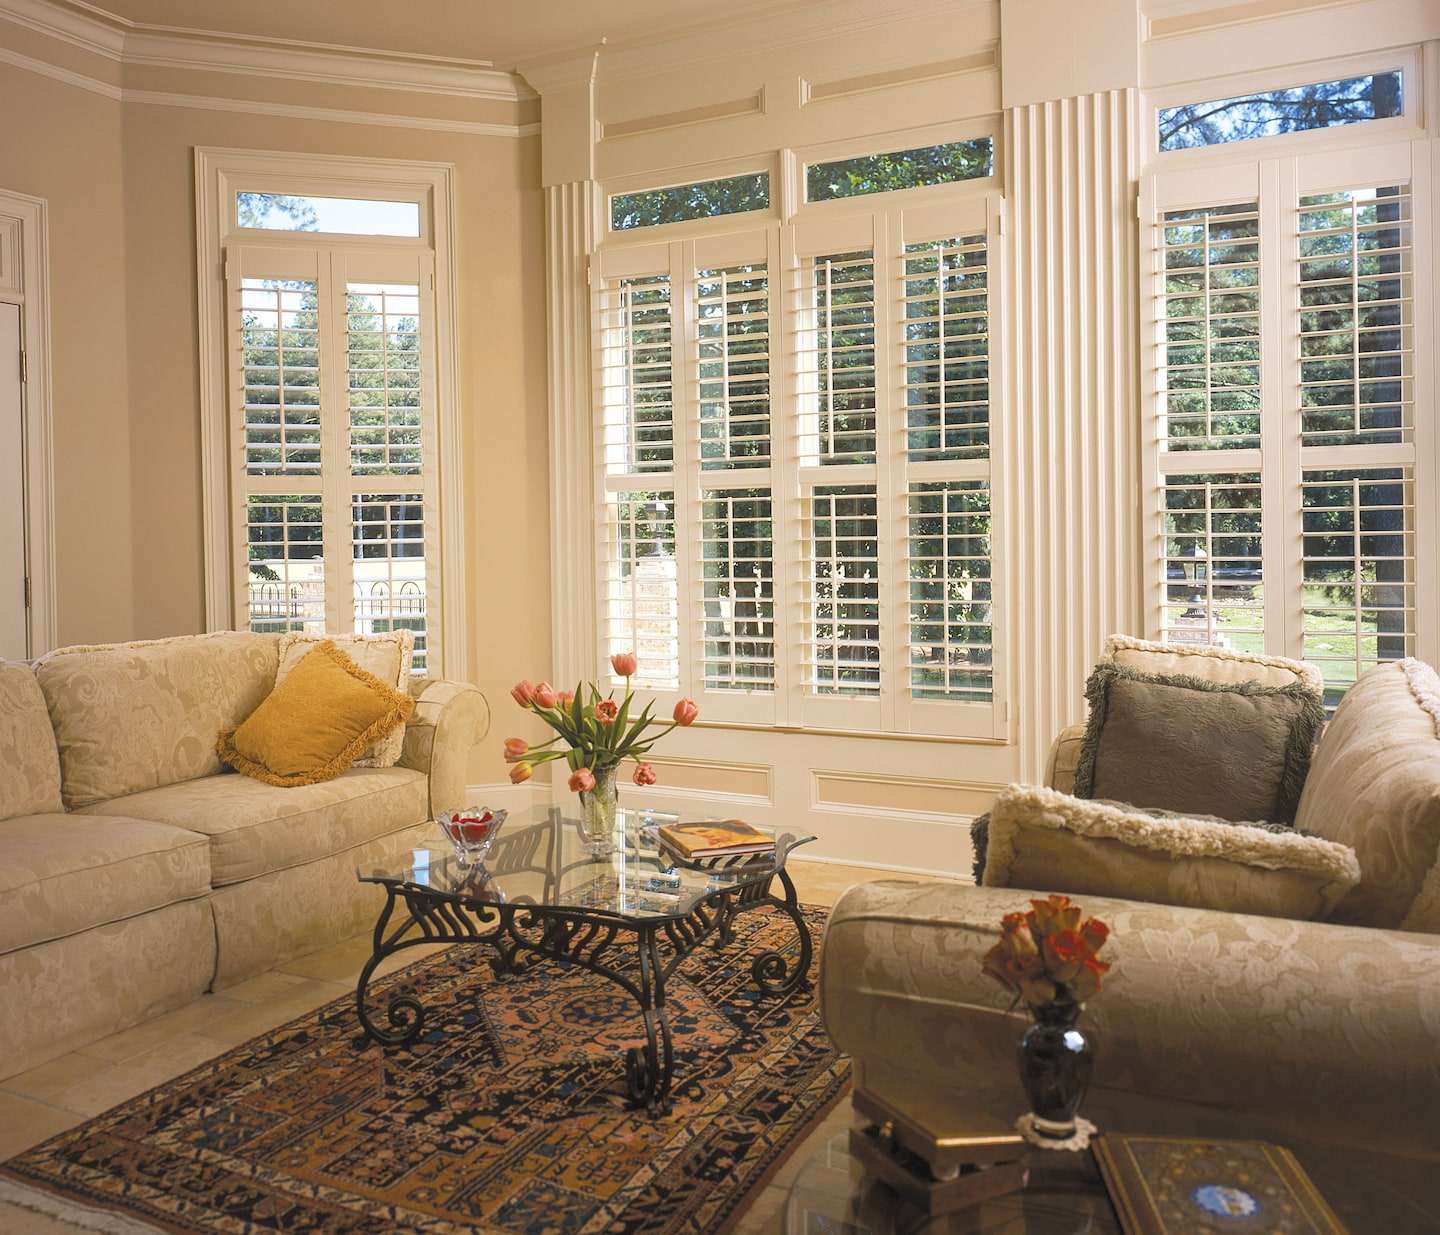 Yocum Shutters & Blinds